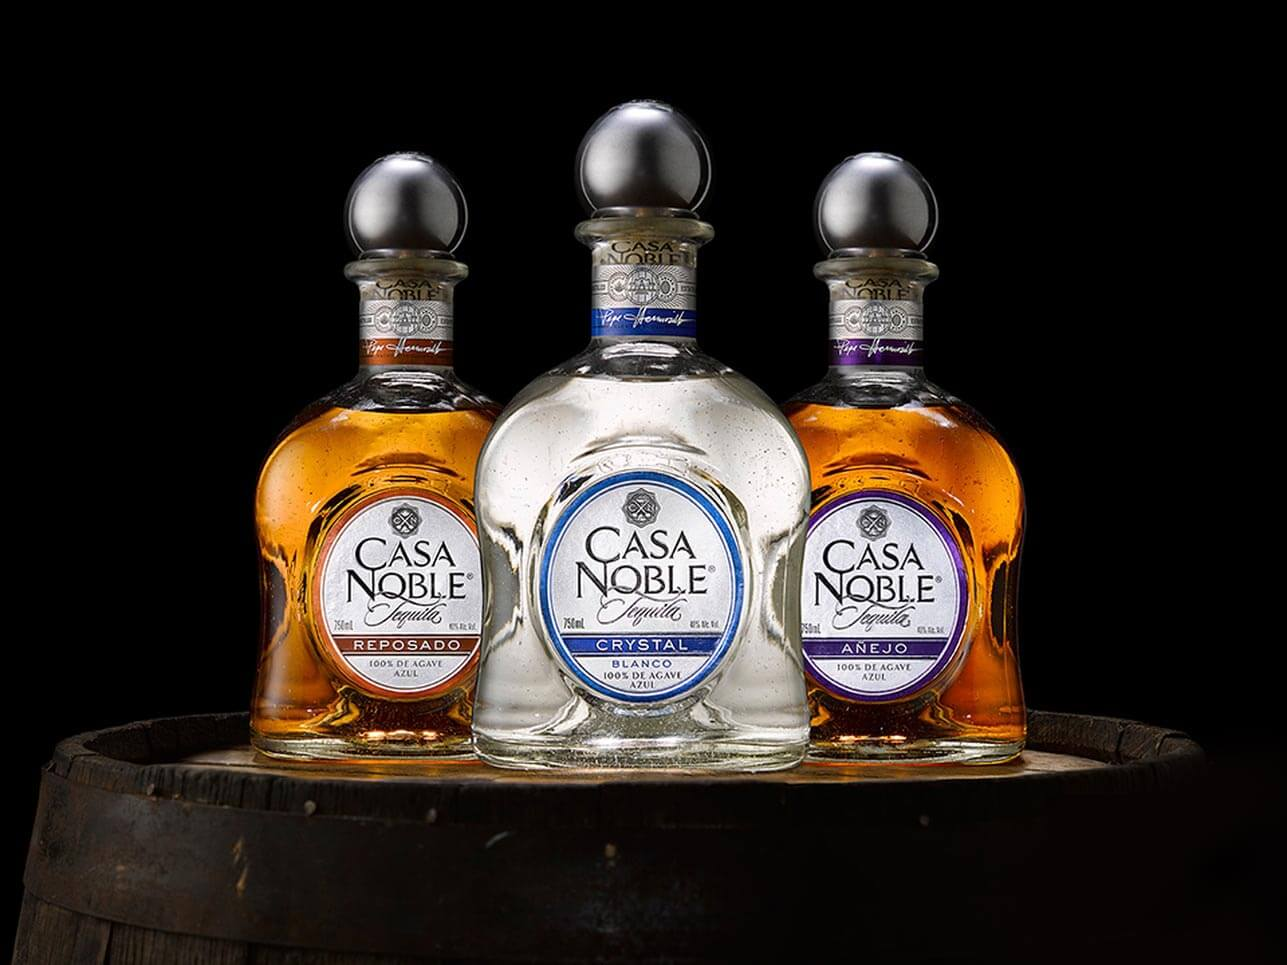 Casa Noble bottle varieties on black background